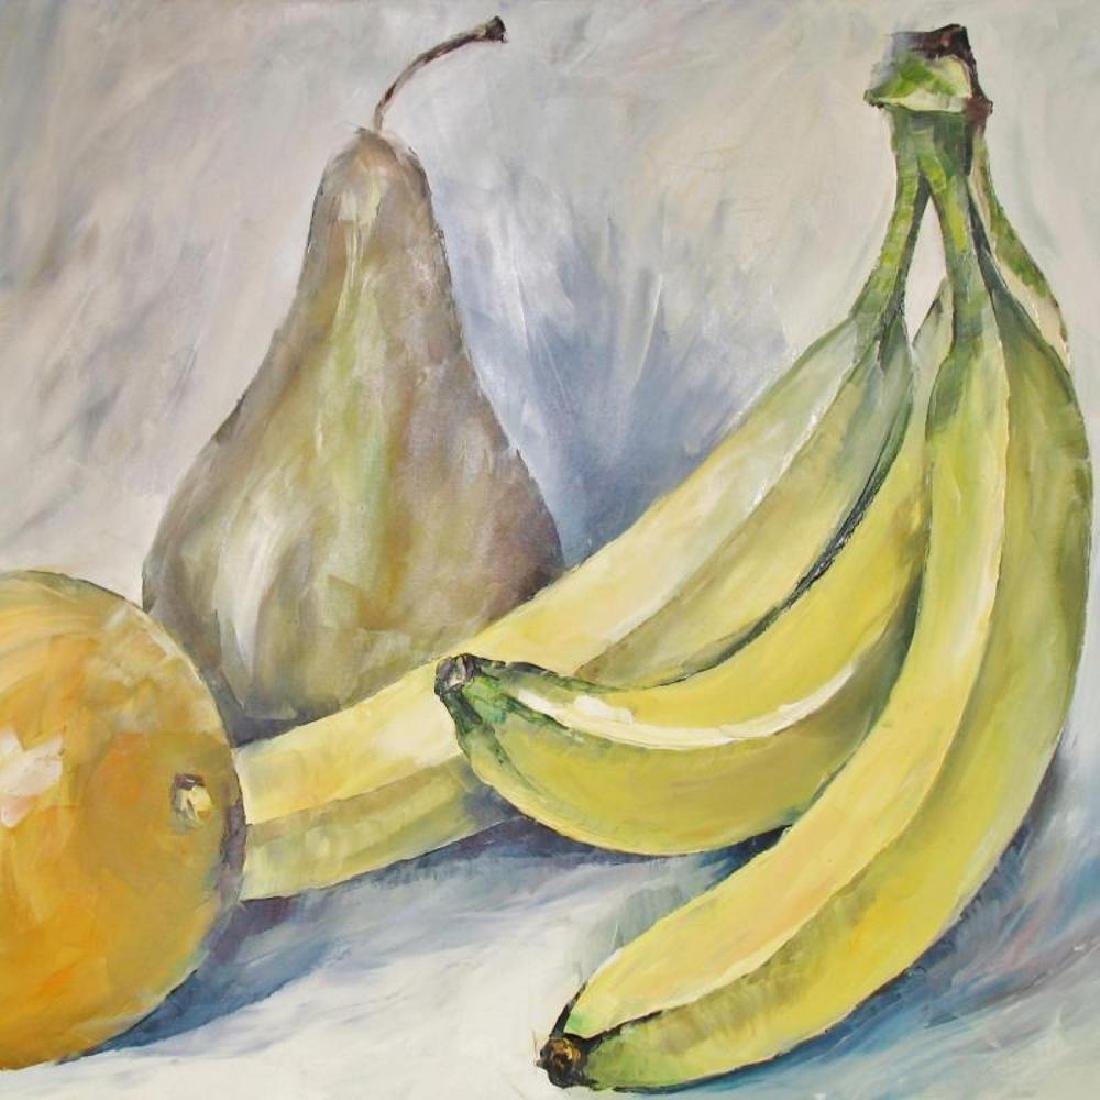 Textured Food Related Impressionistic Palette Knife - 2